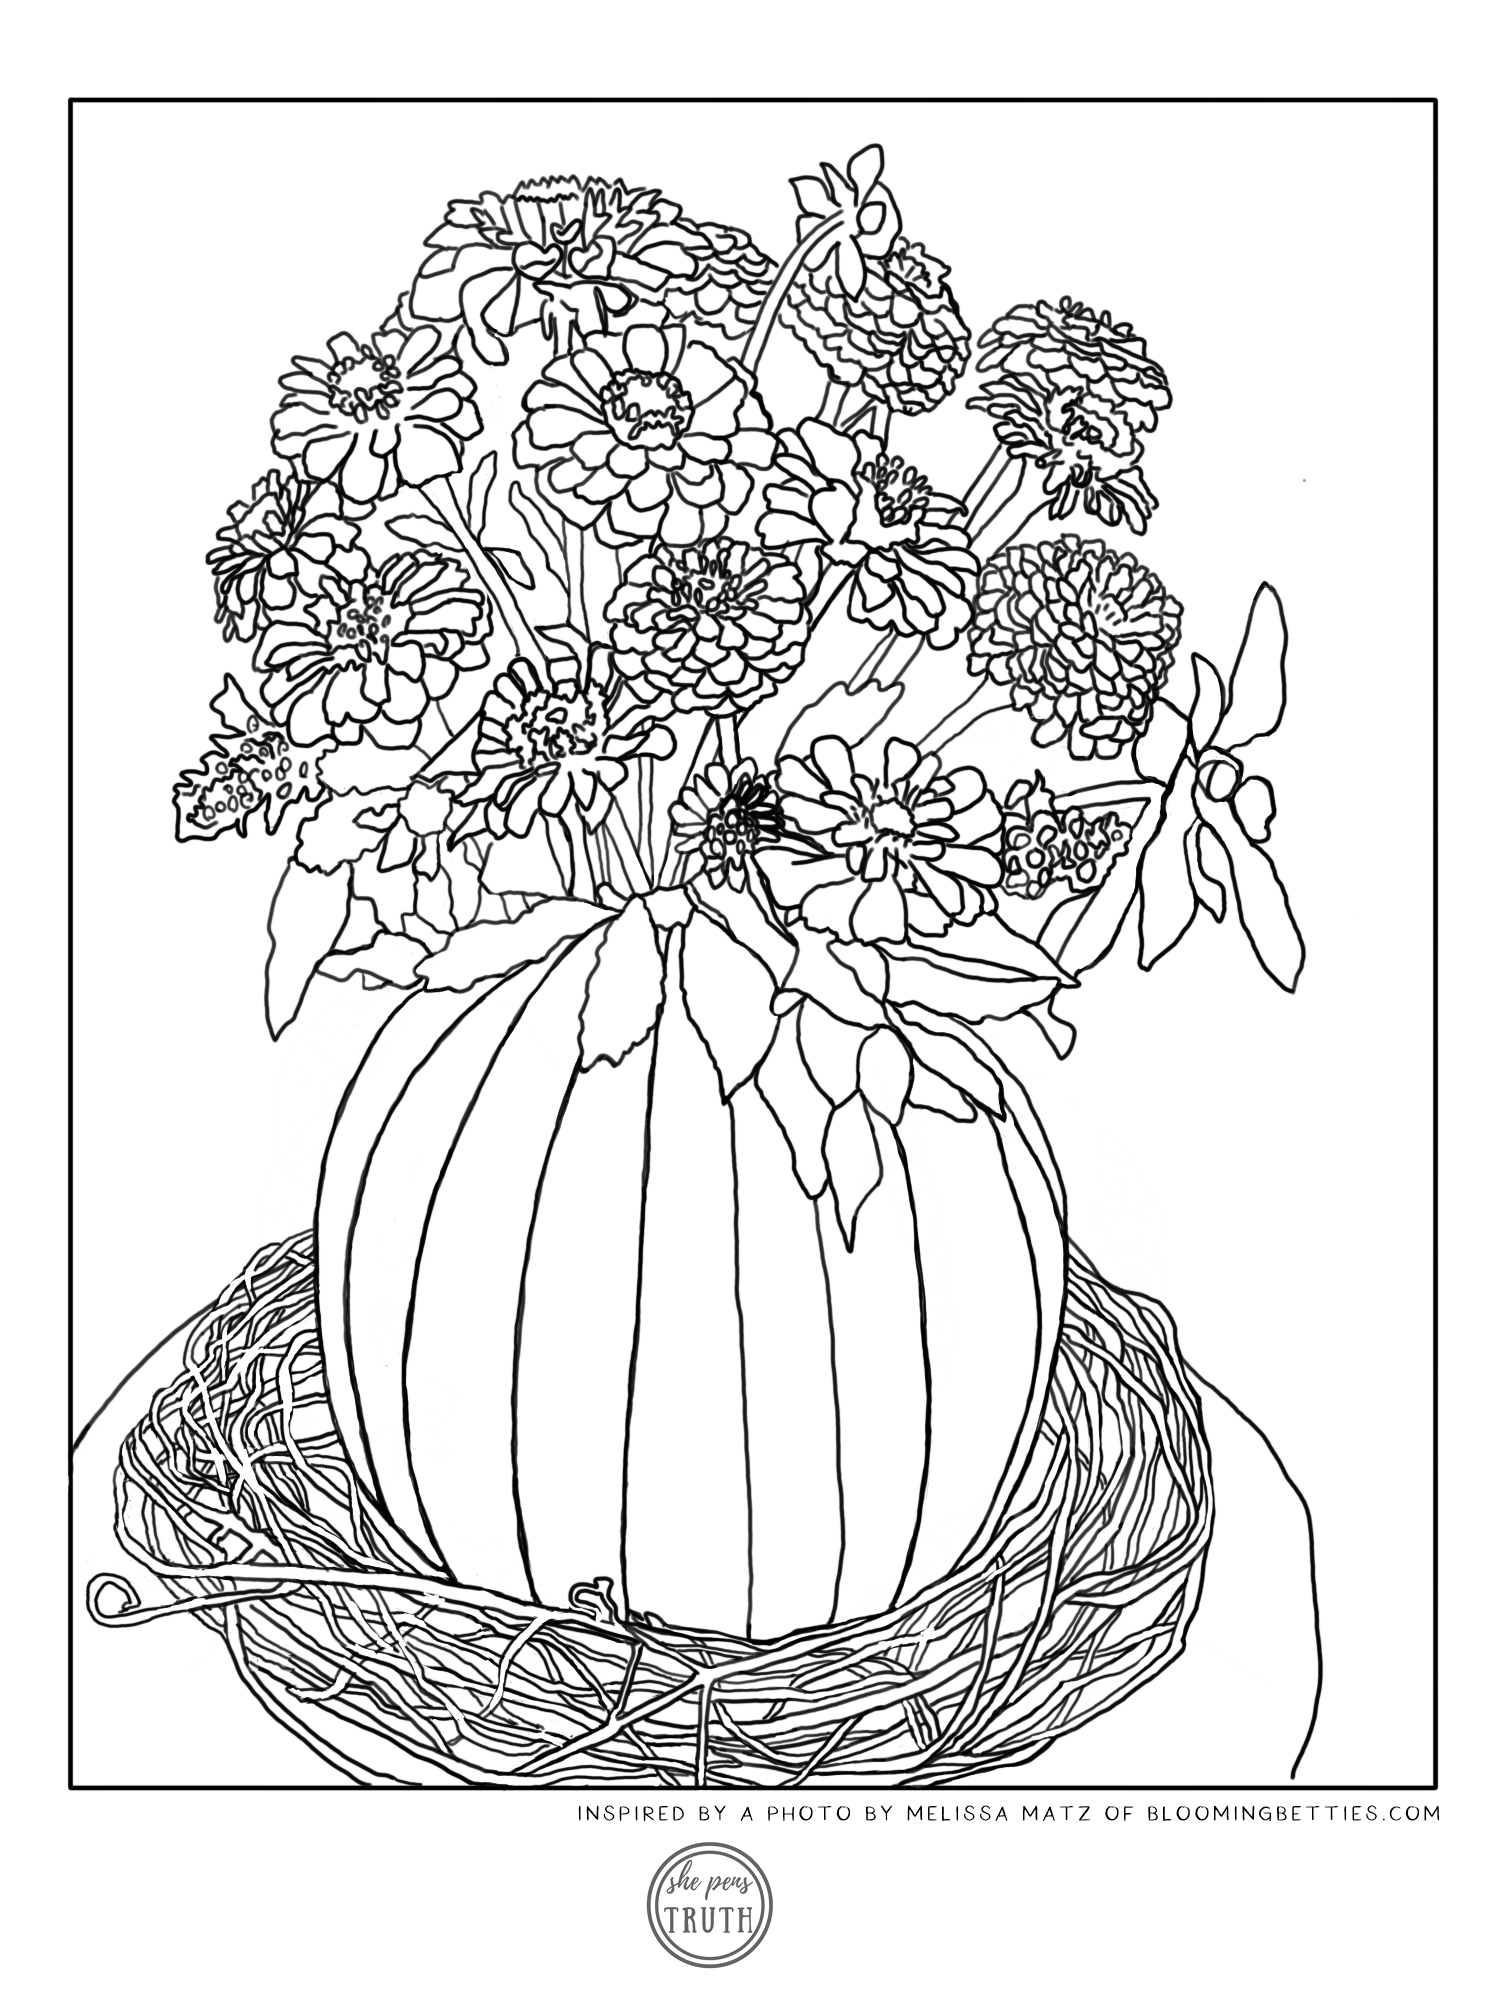 Bloom with Gratitude Coloring Page, Blooming Betties and She Pens Truth, Pumpkin Vase filled with Zinnias